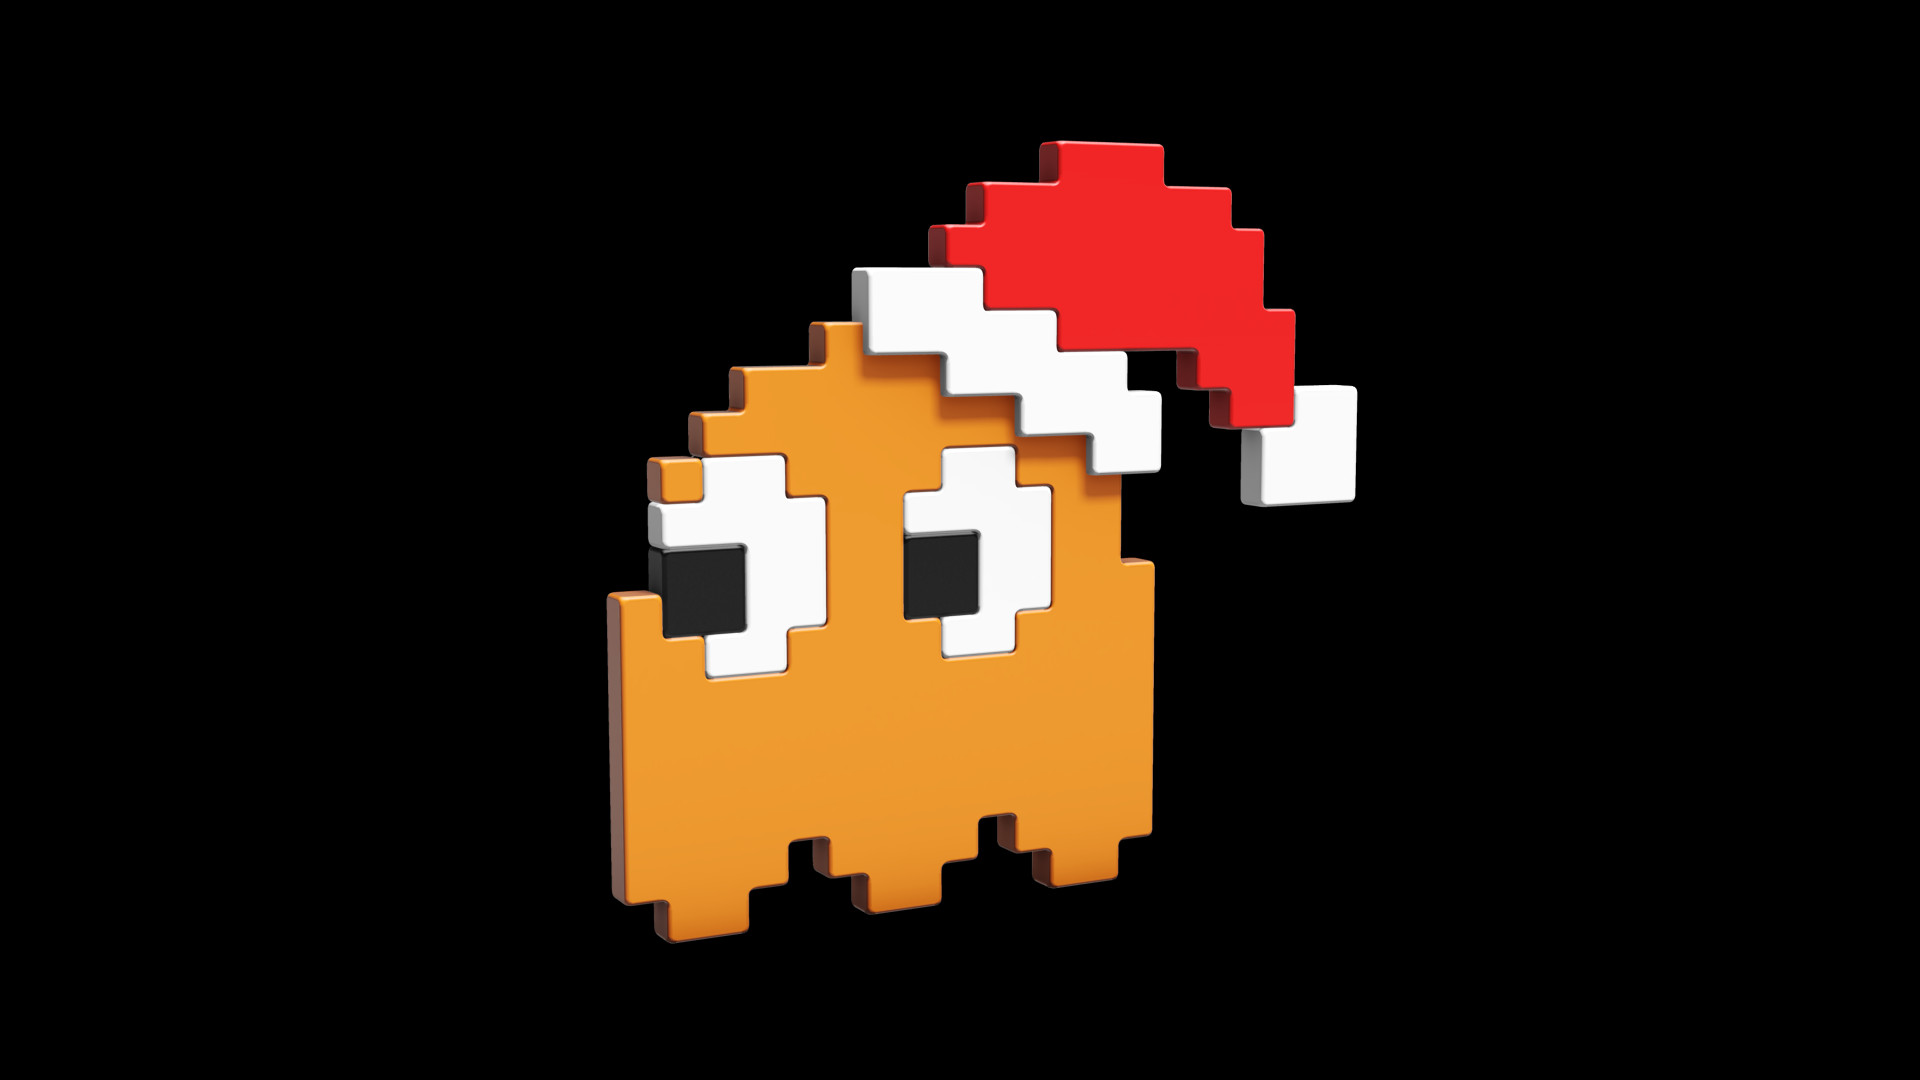 Pac Man Ghost Wallpaper - Christmas Edition by cubik-deviantart